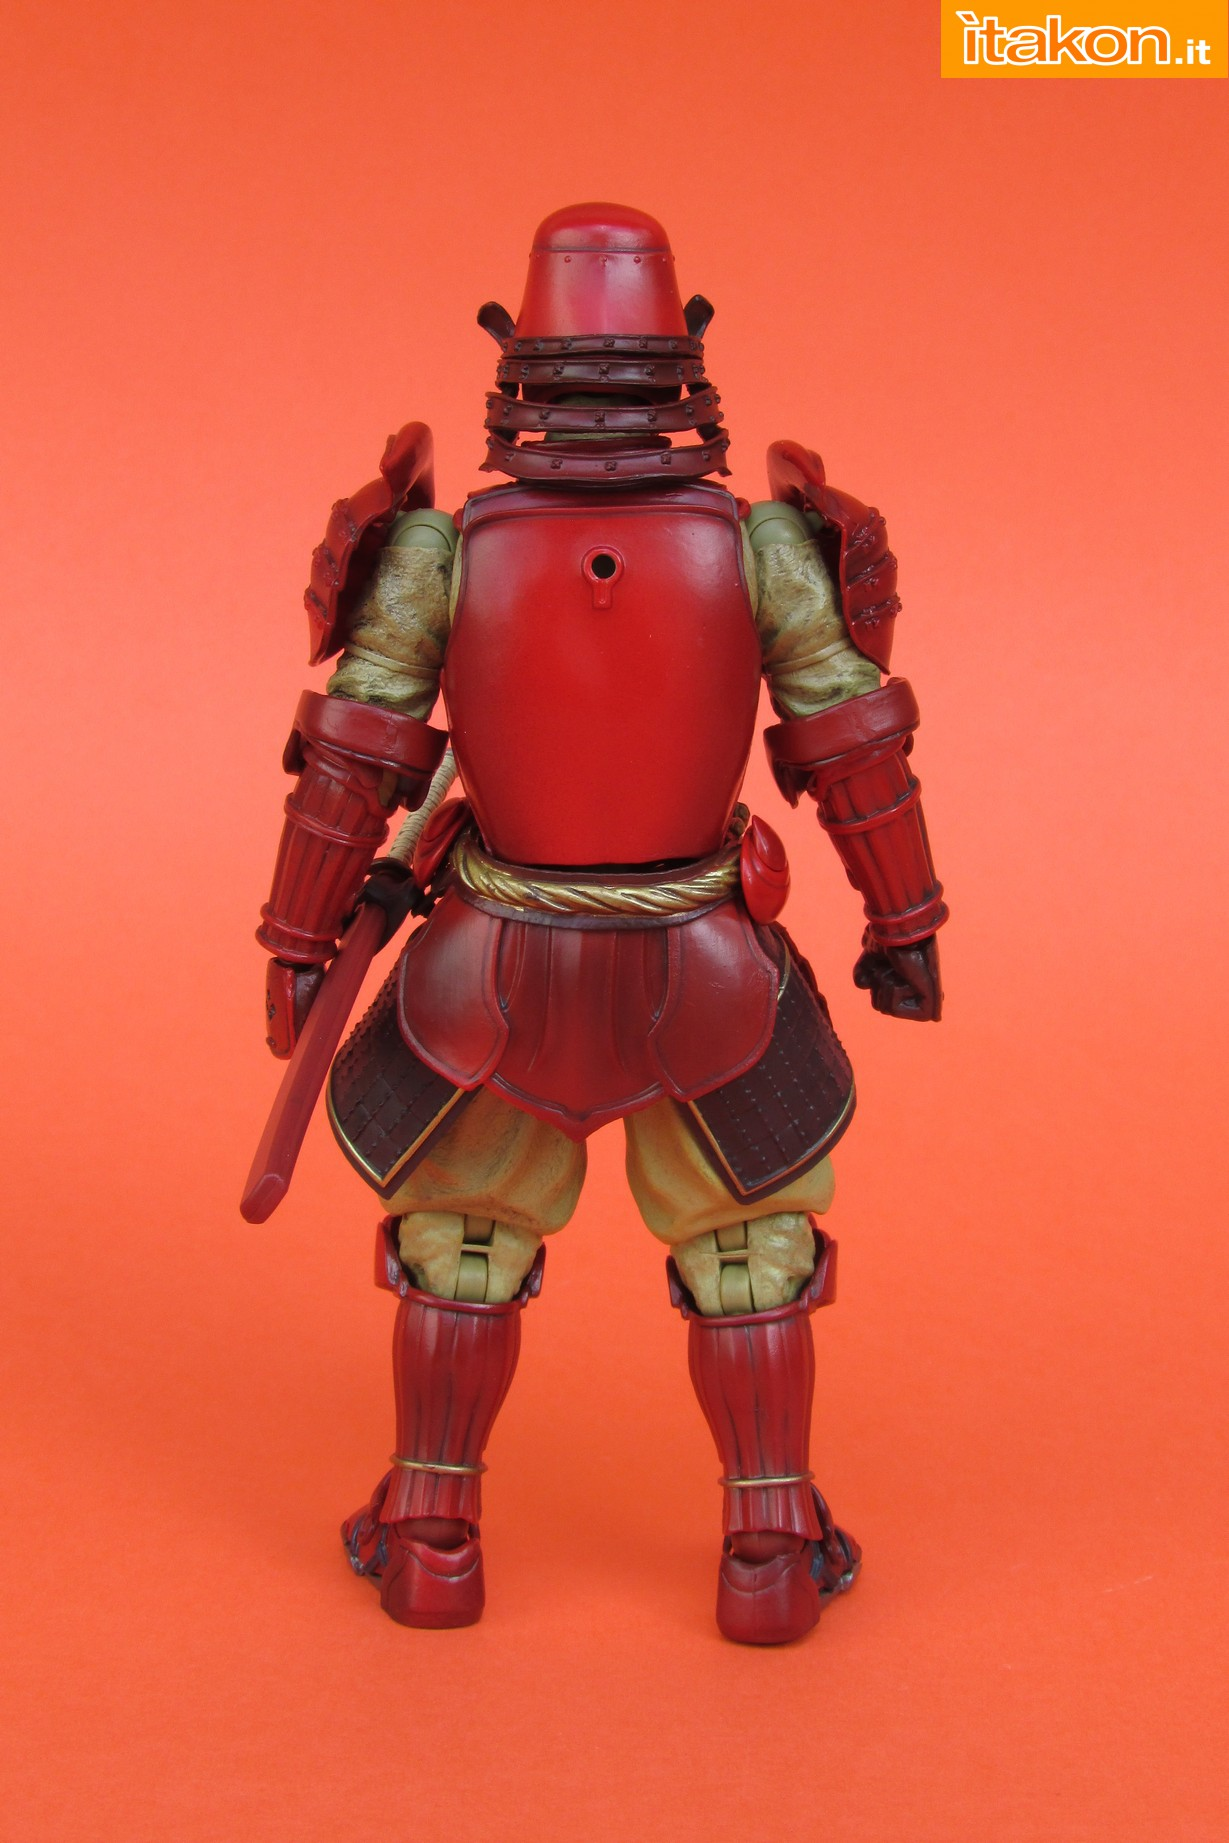 Link a Marvel Comics Koutetsu Samurai Iron Man Mark 3 Meishou MANGA REALIZATION review Bandai Itakon.it13